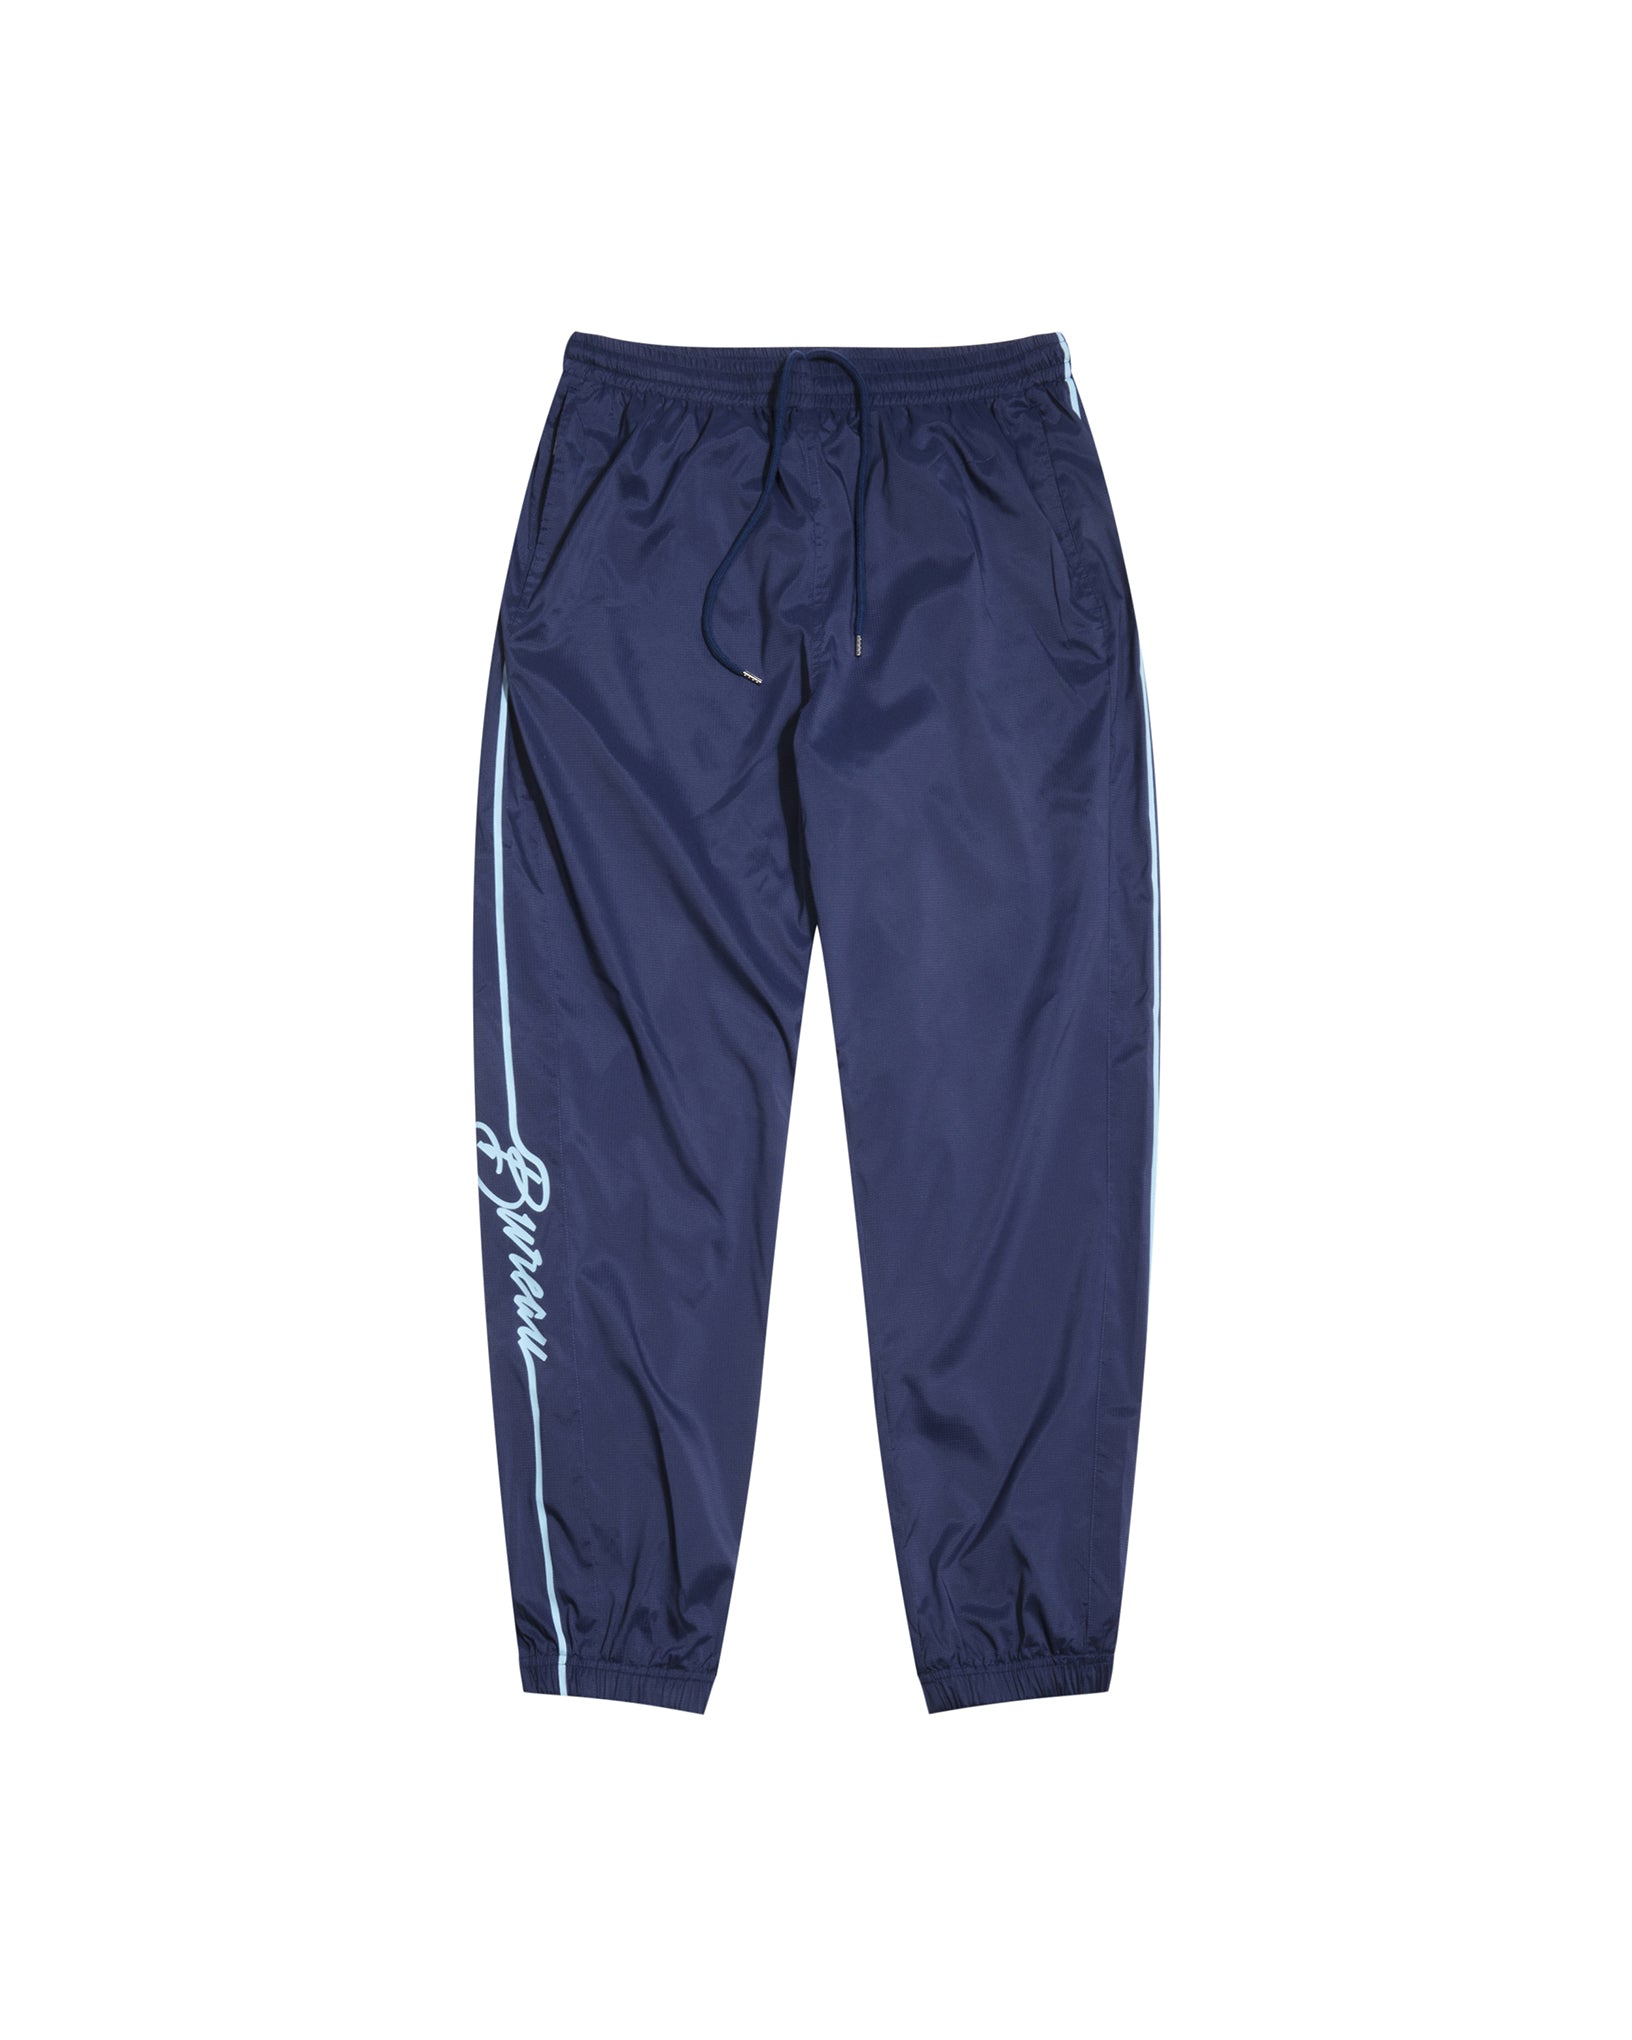 Navy Blue Relaxed Fit Men's Track Pants